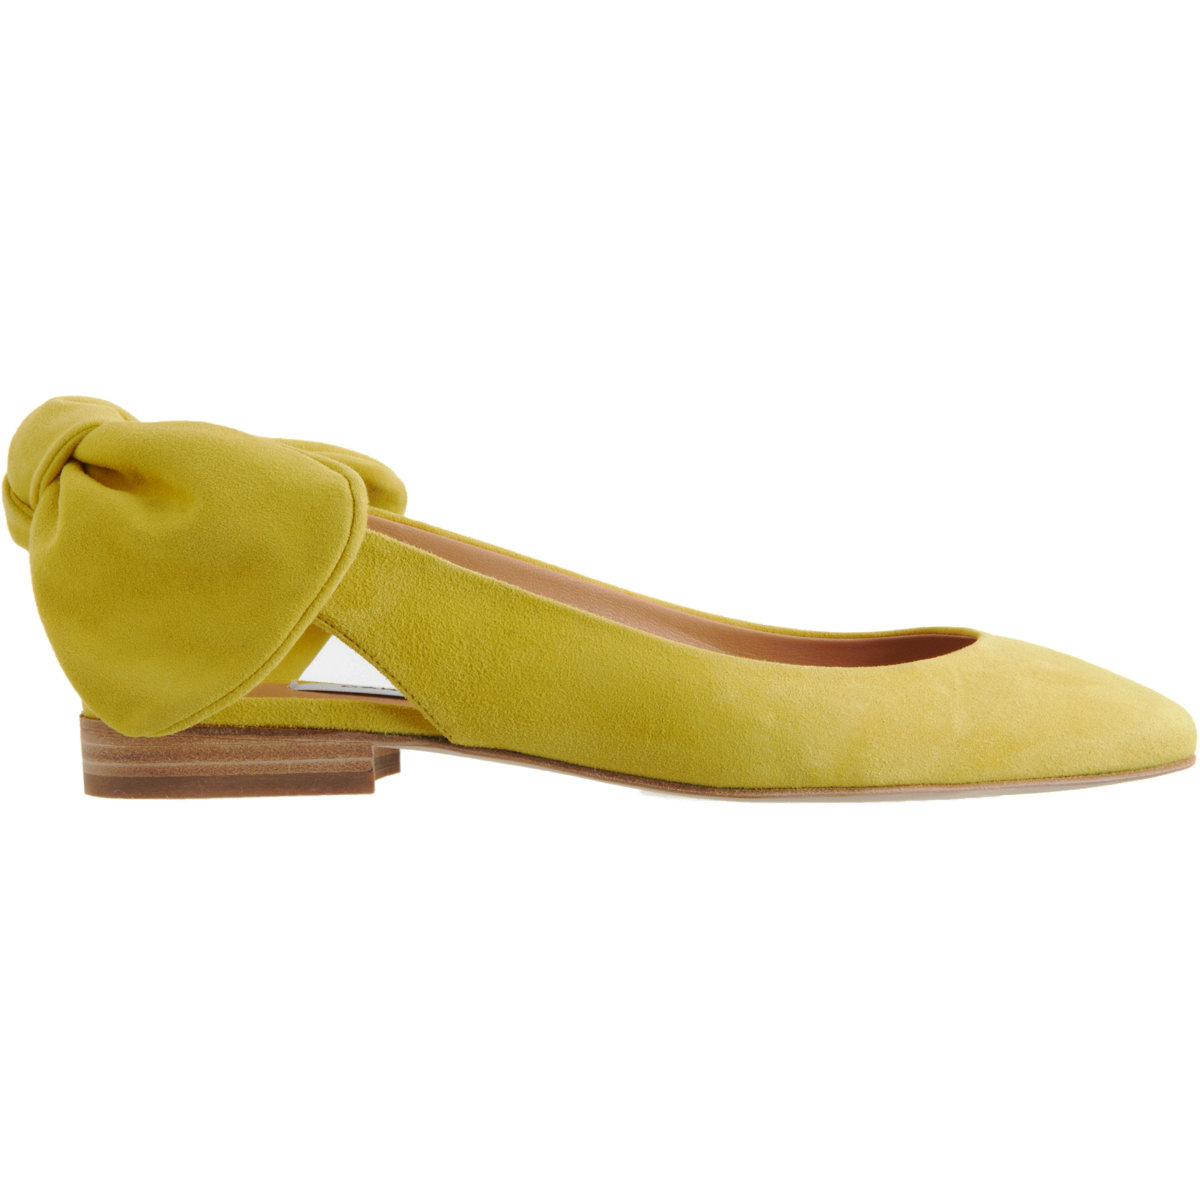 f244116f2095 Carven Slingback Bow Ballet Flat in Yellow - Lyst